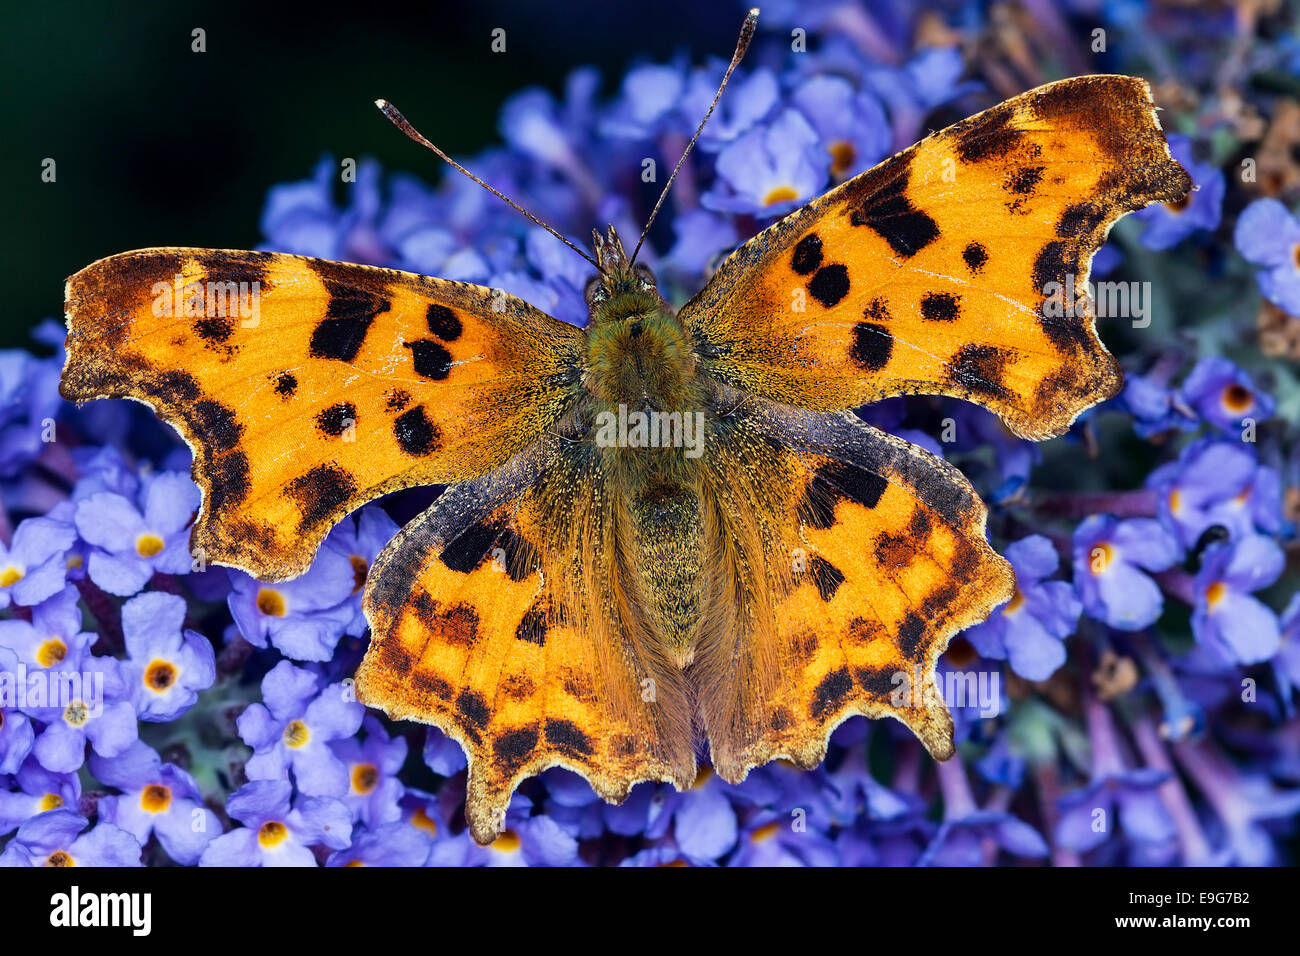 Comma Butterfly (Polygonia c-album) feeding on nectar of a buddleia plant in an English country garden Stock Photo